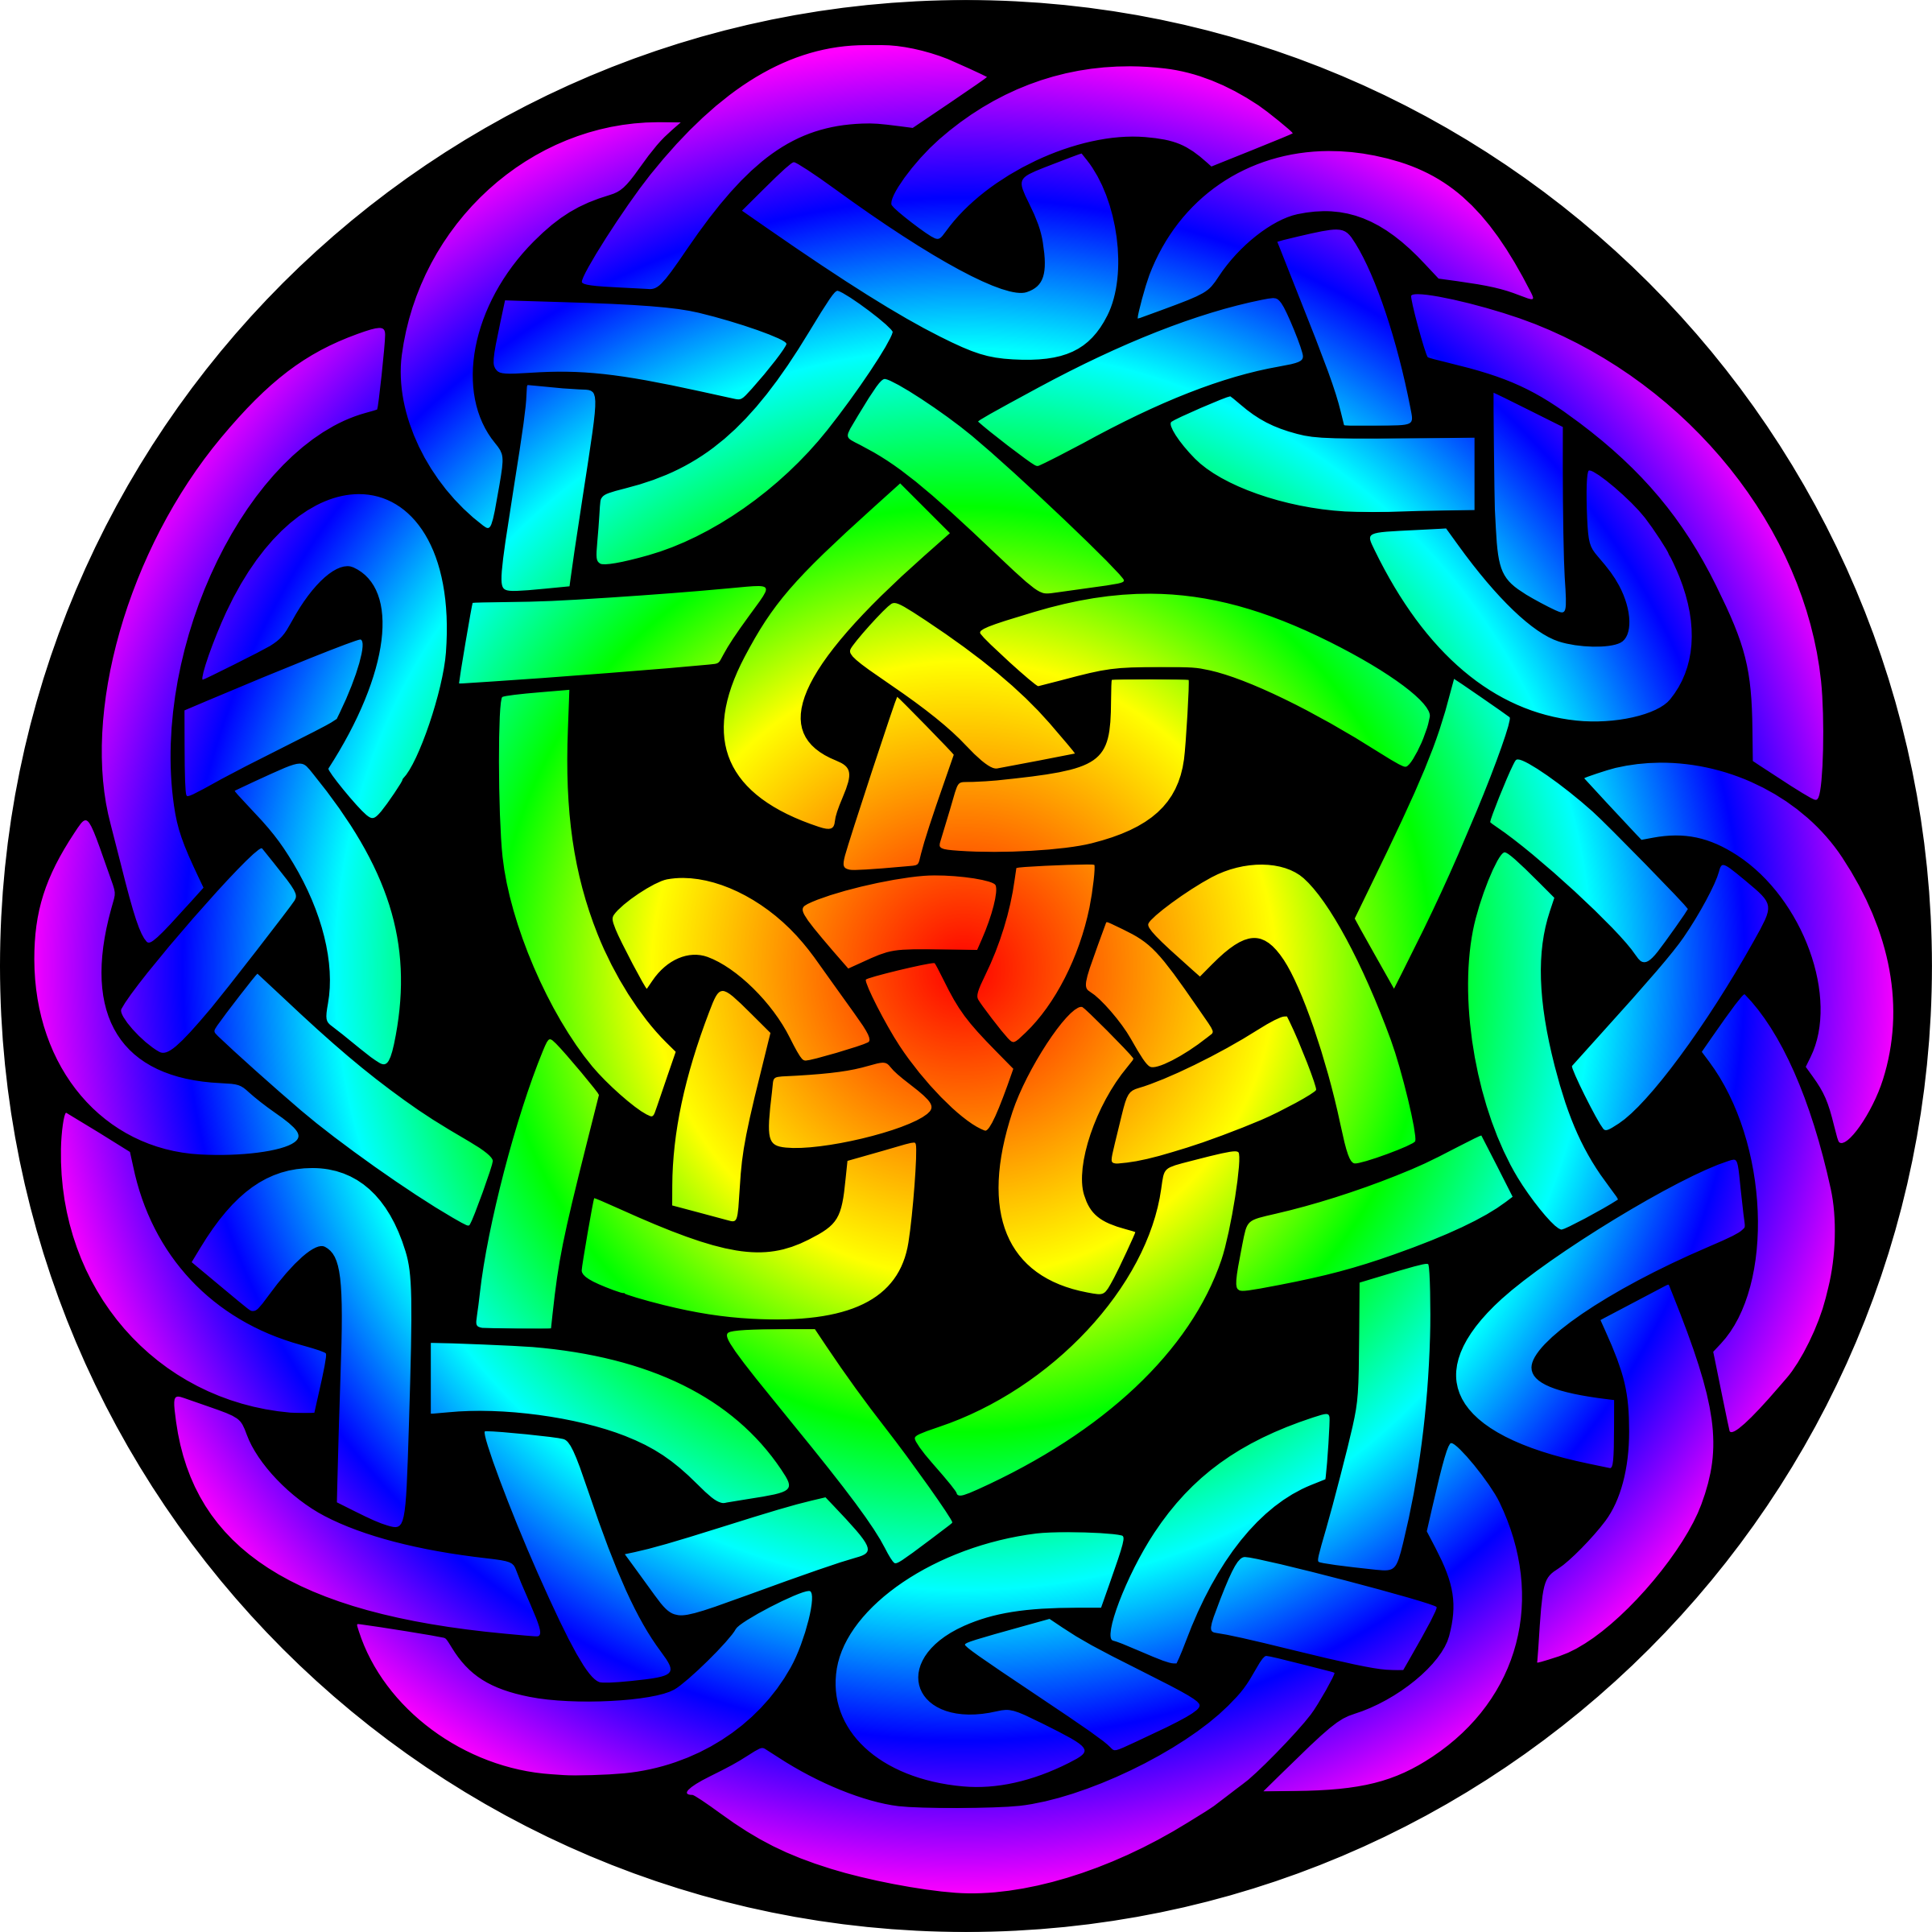 Celtic knot 3 (rainbow colours, black background) by Firkin